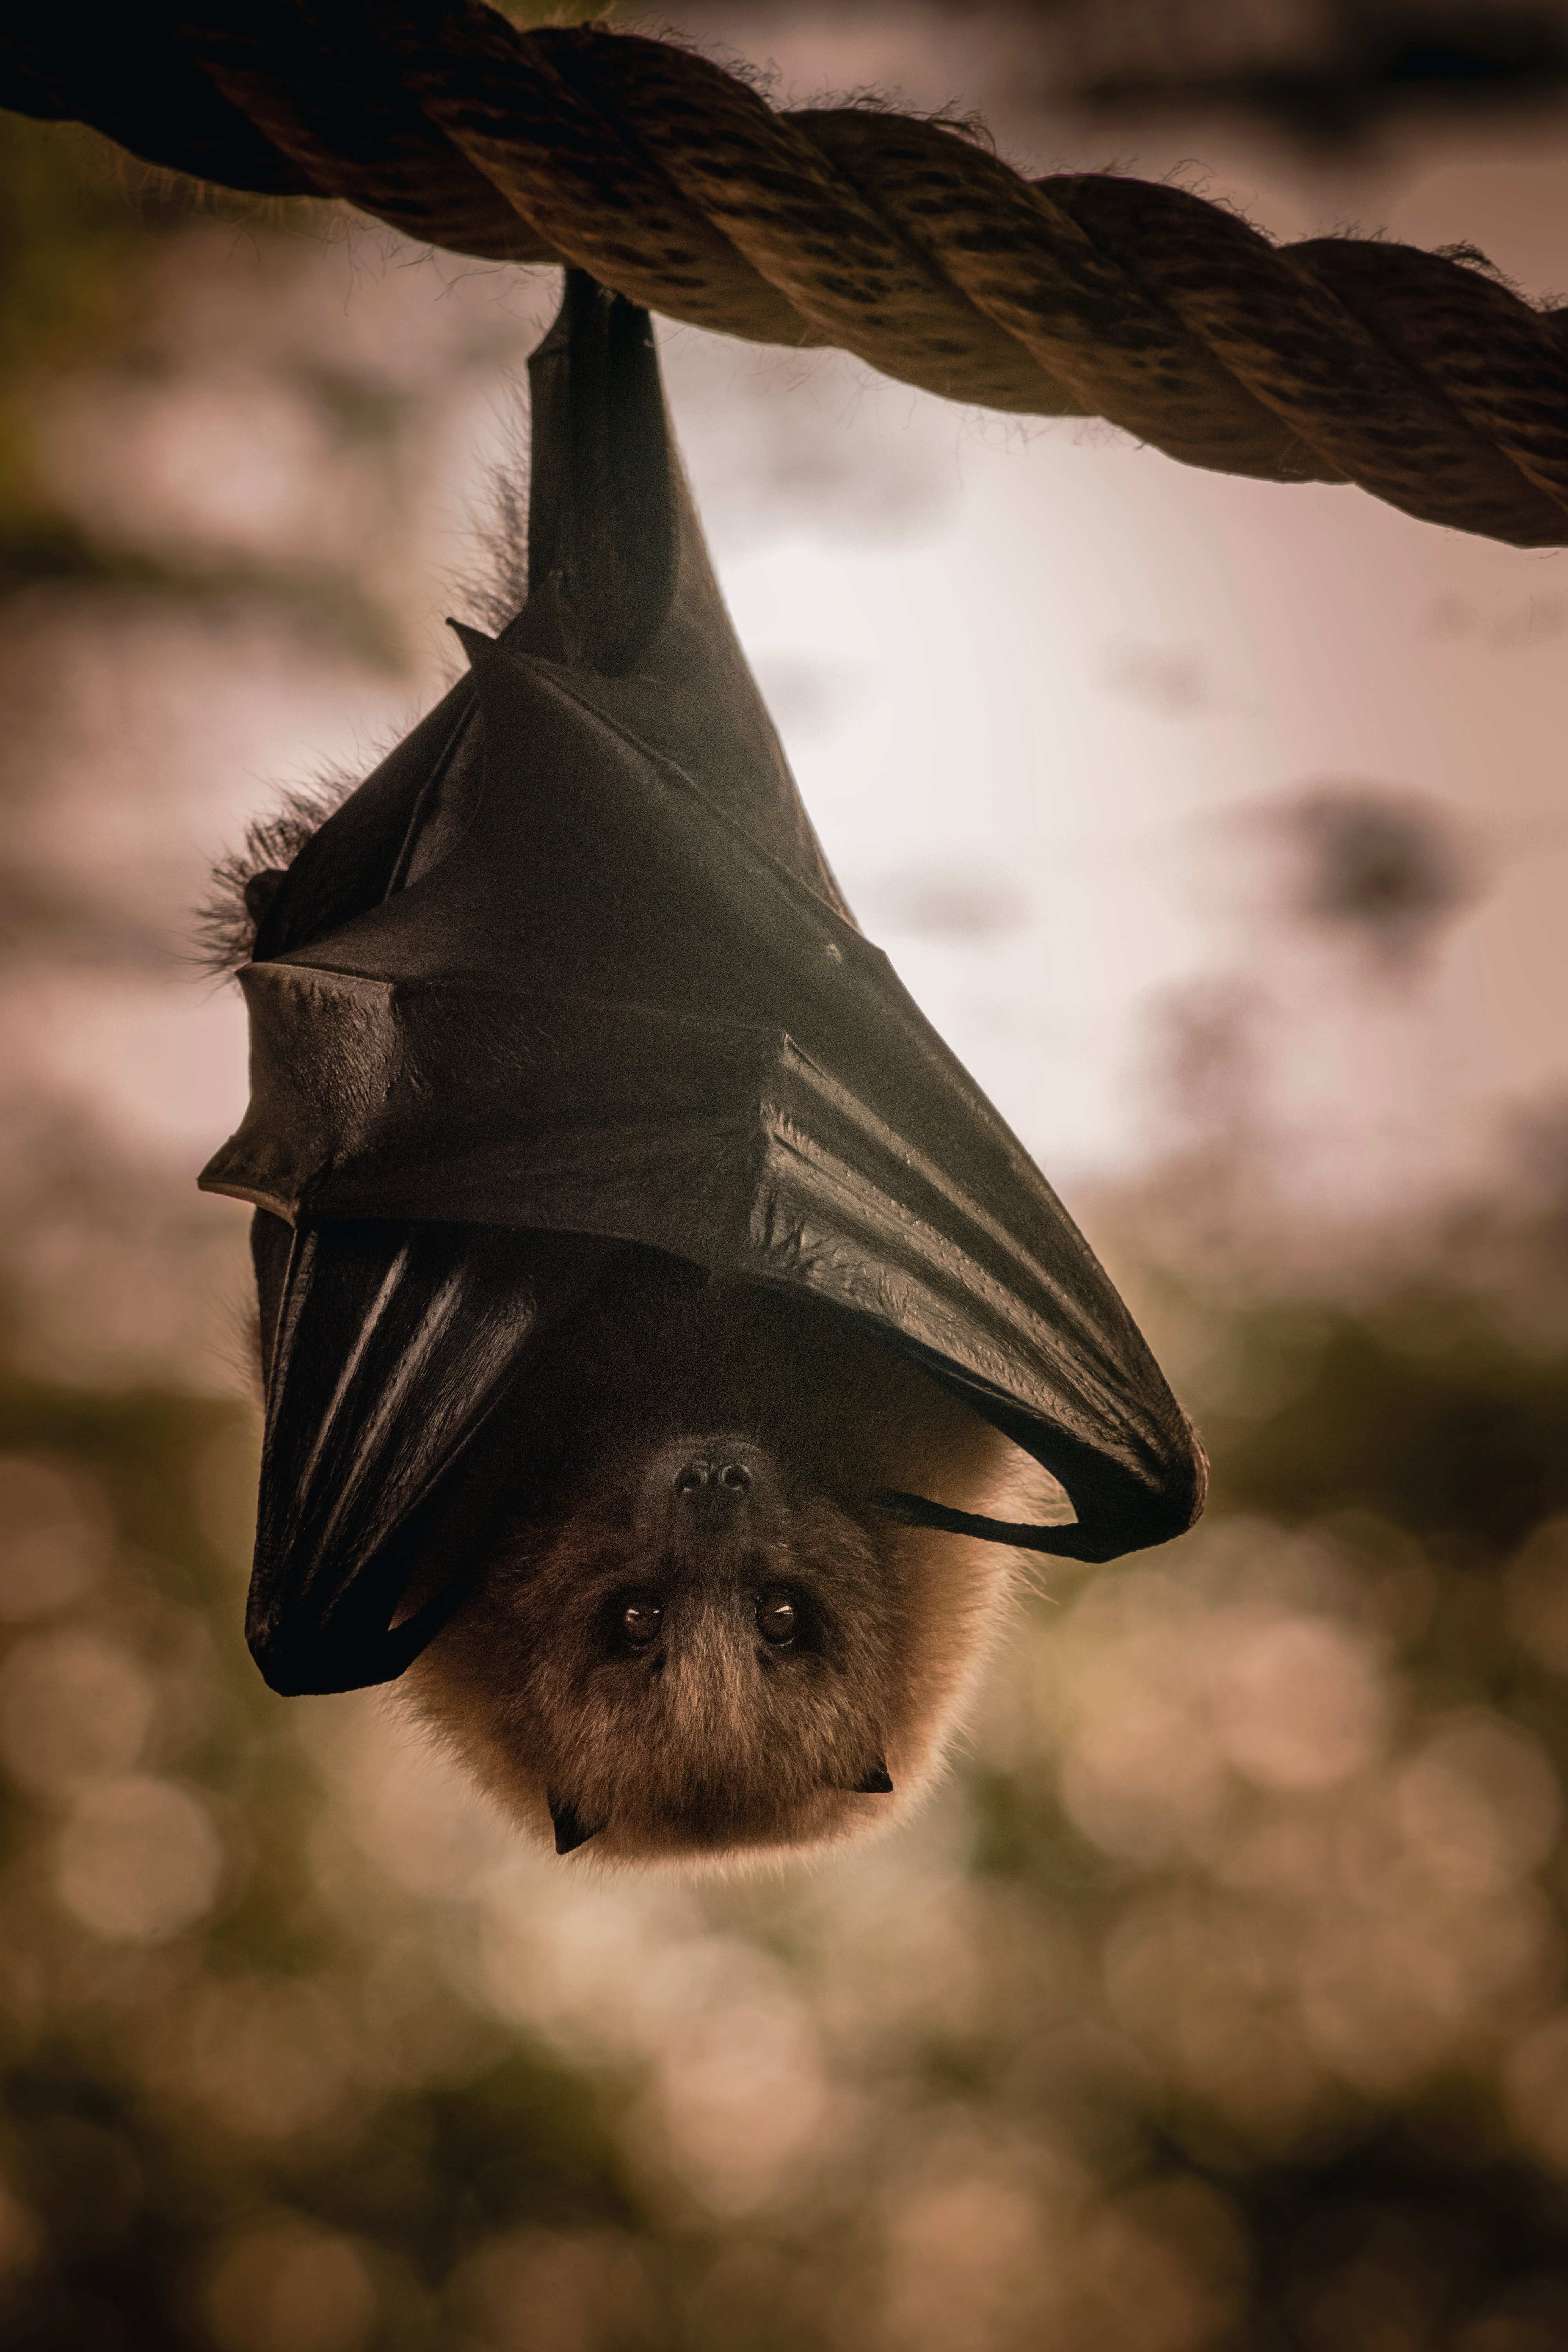 A bat in the woods hanging upside down | Photo: pexels